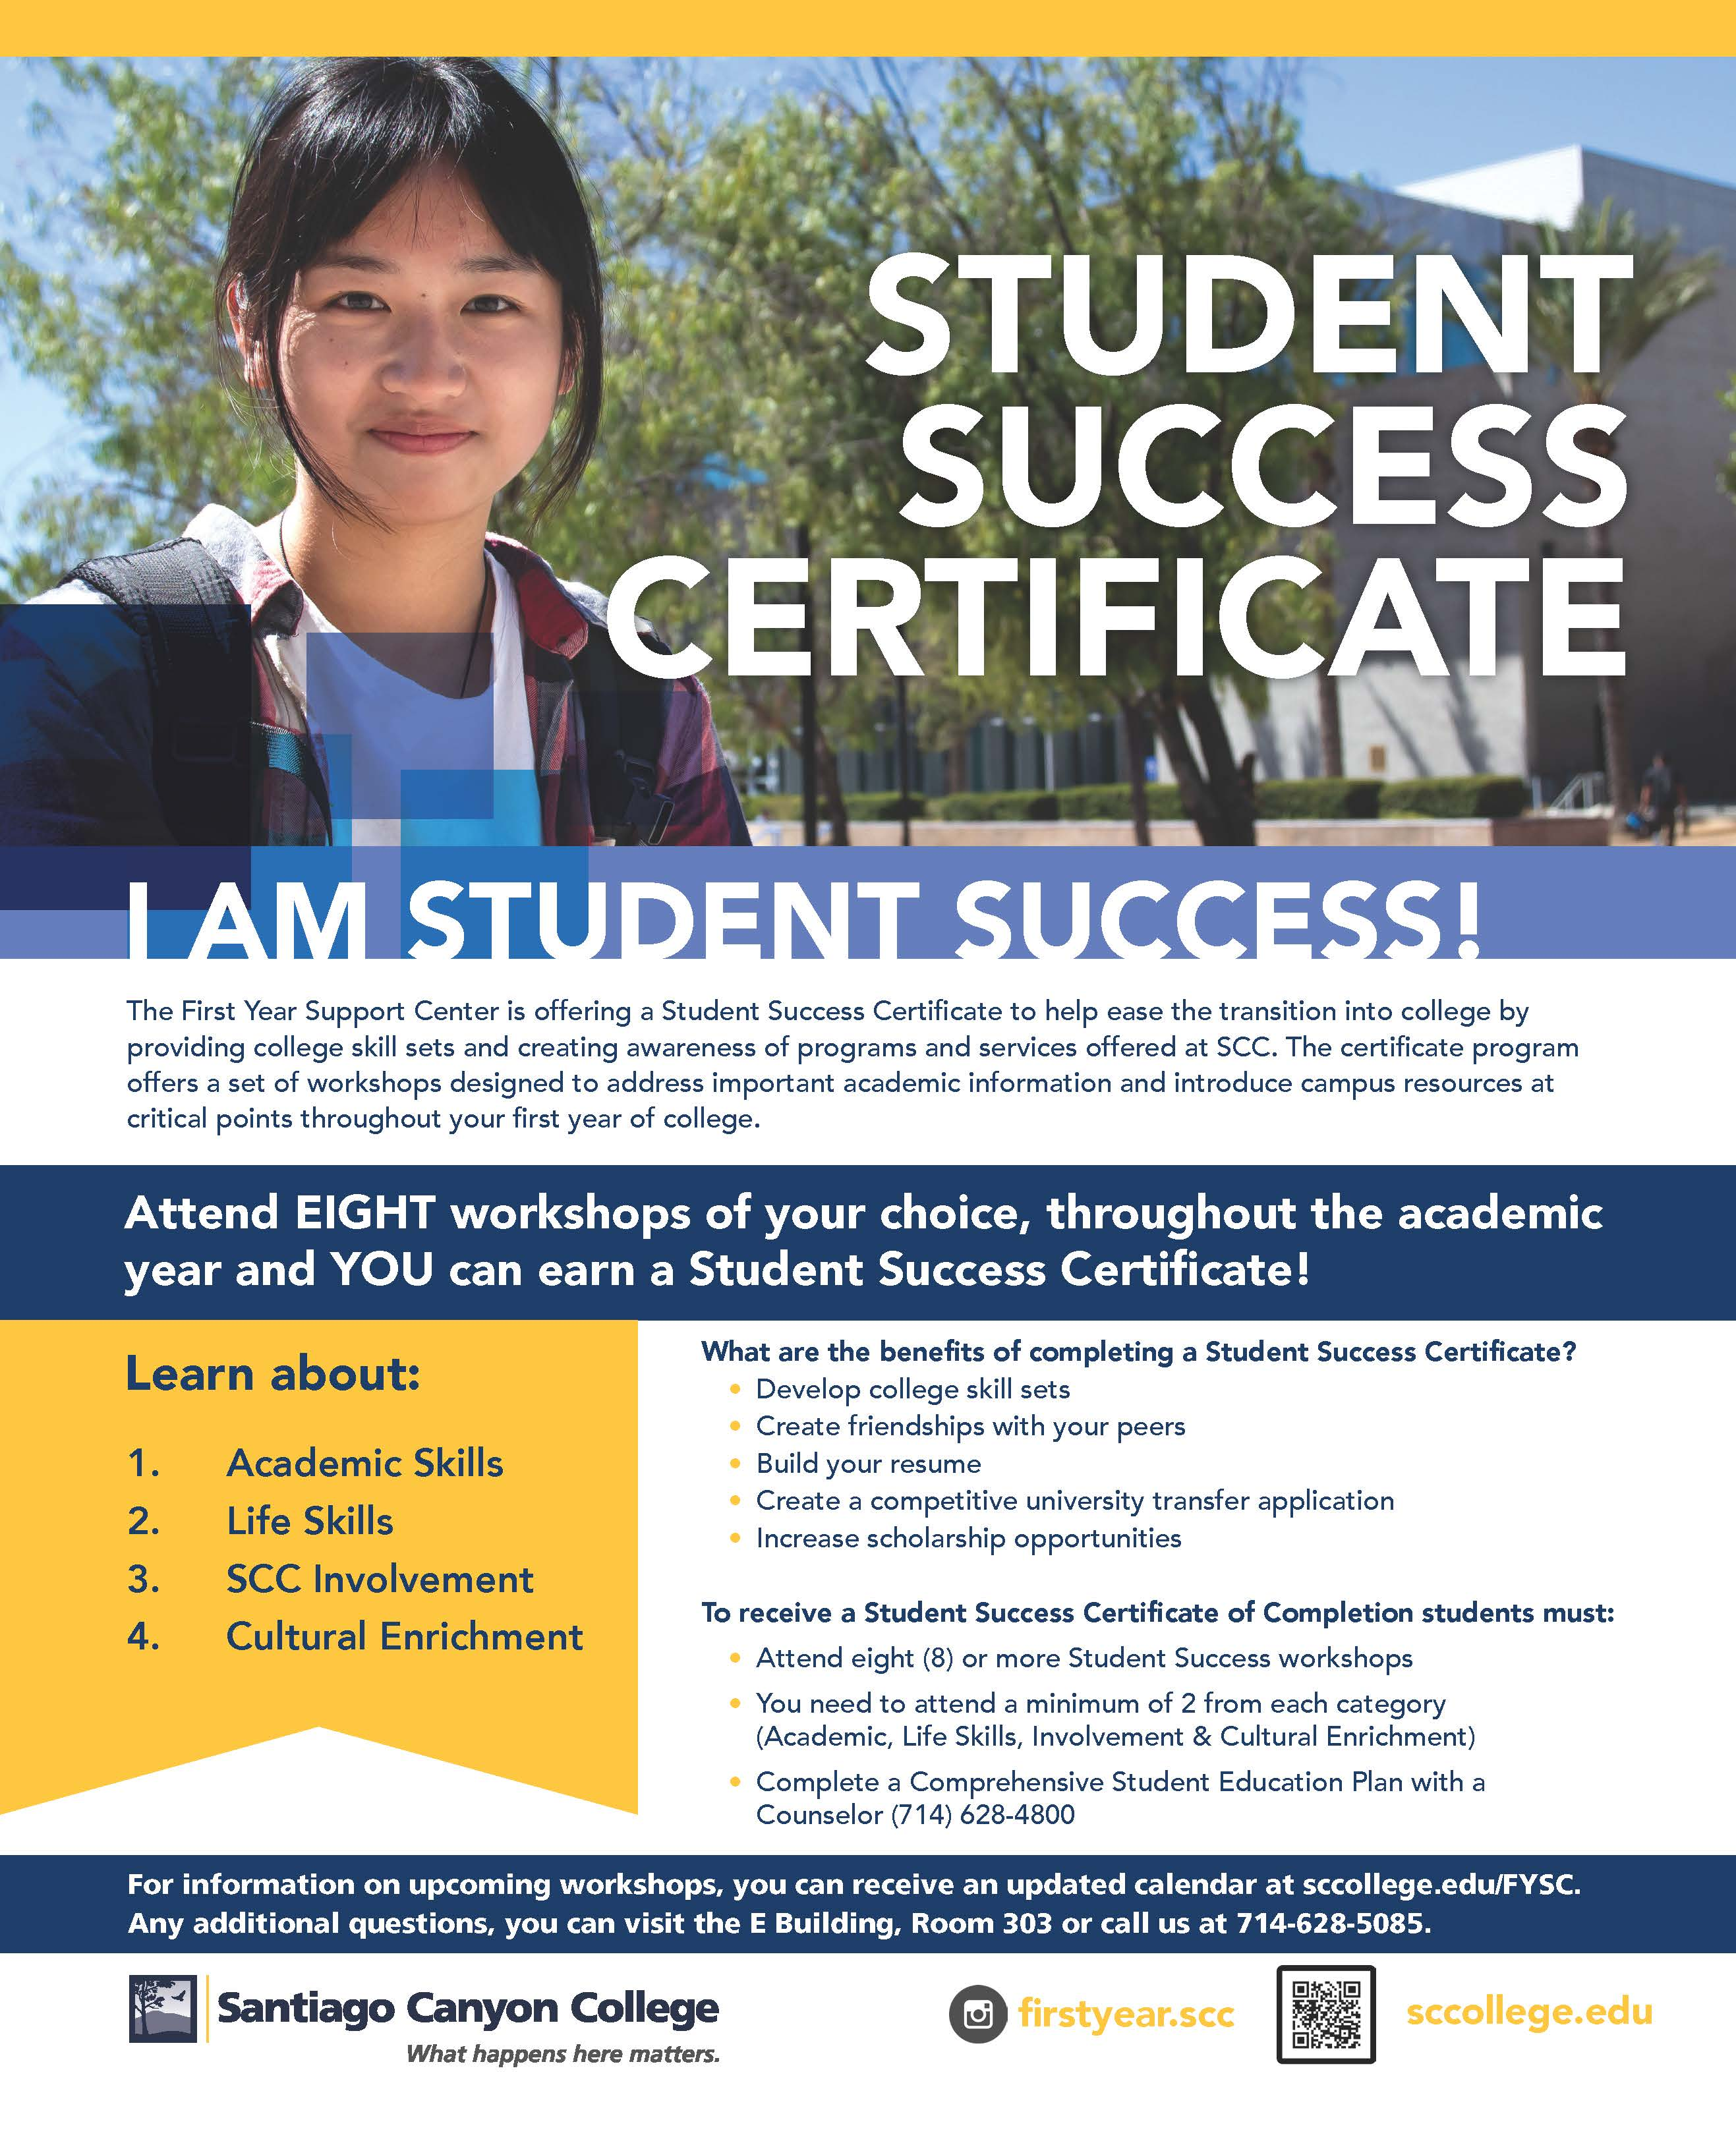 SCC_StudentSuccessCertificate_Flyer_Fall2019V2.jpg